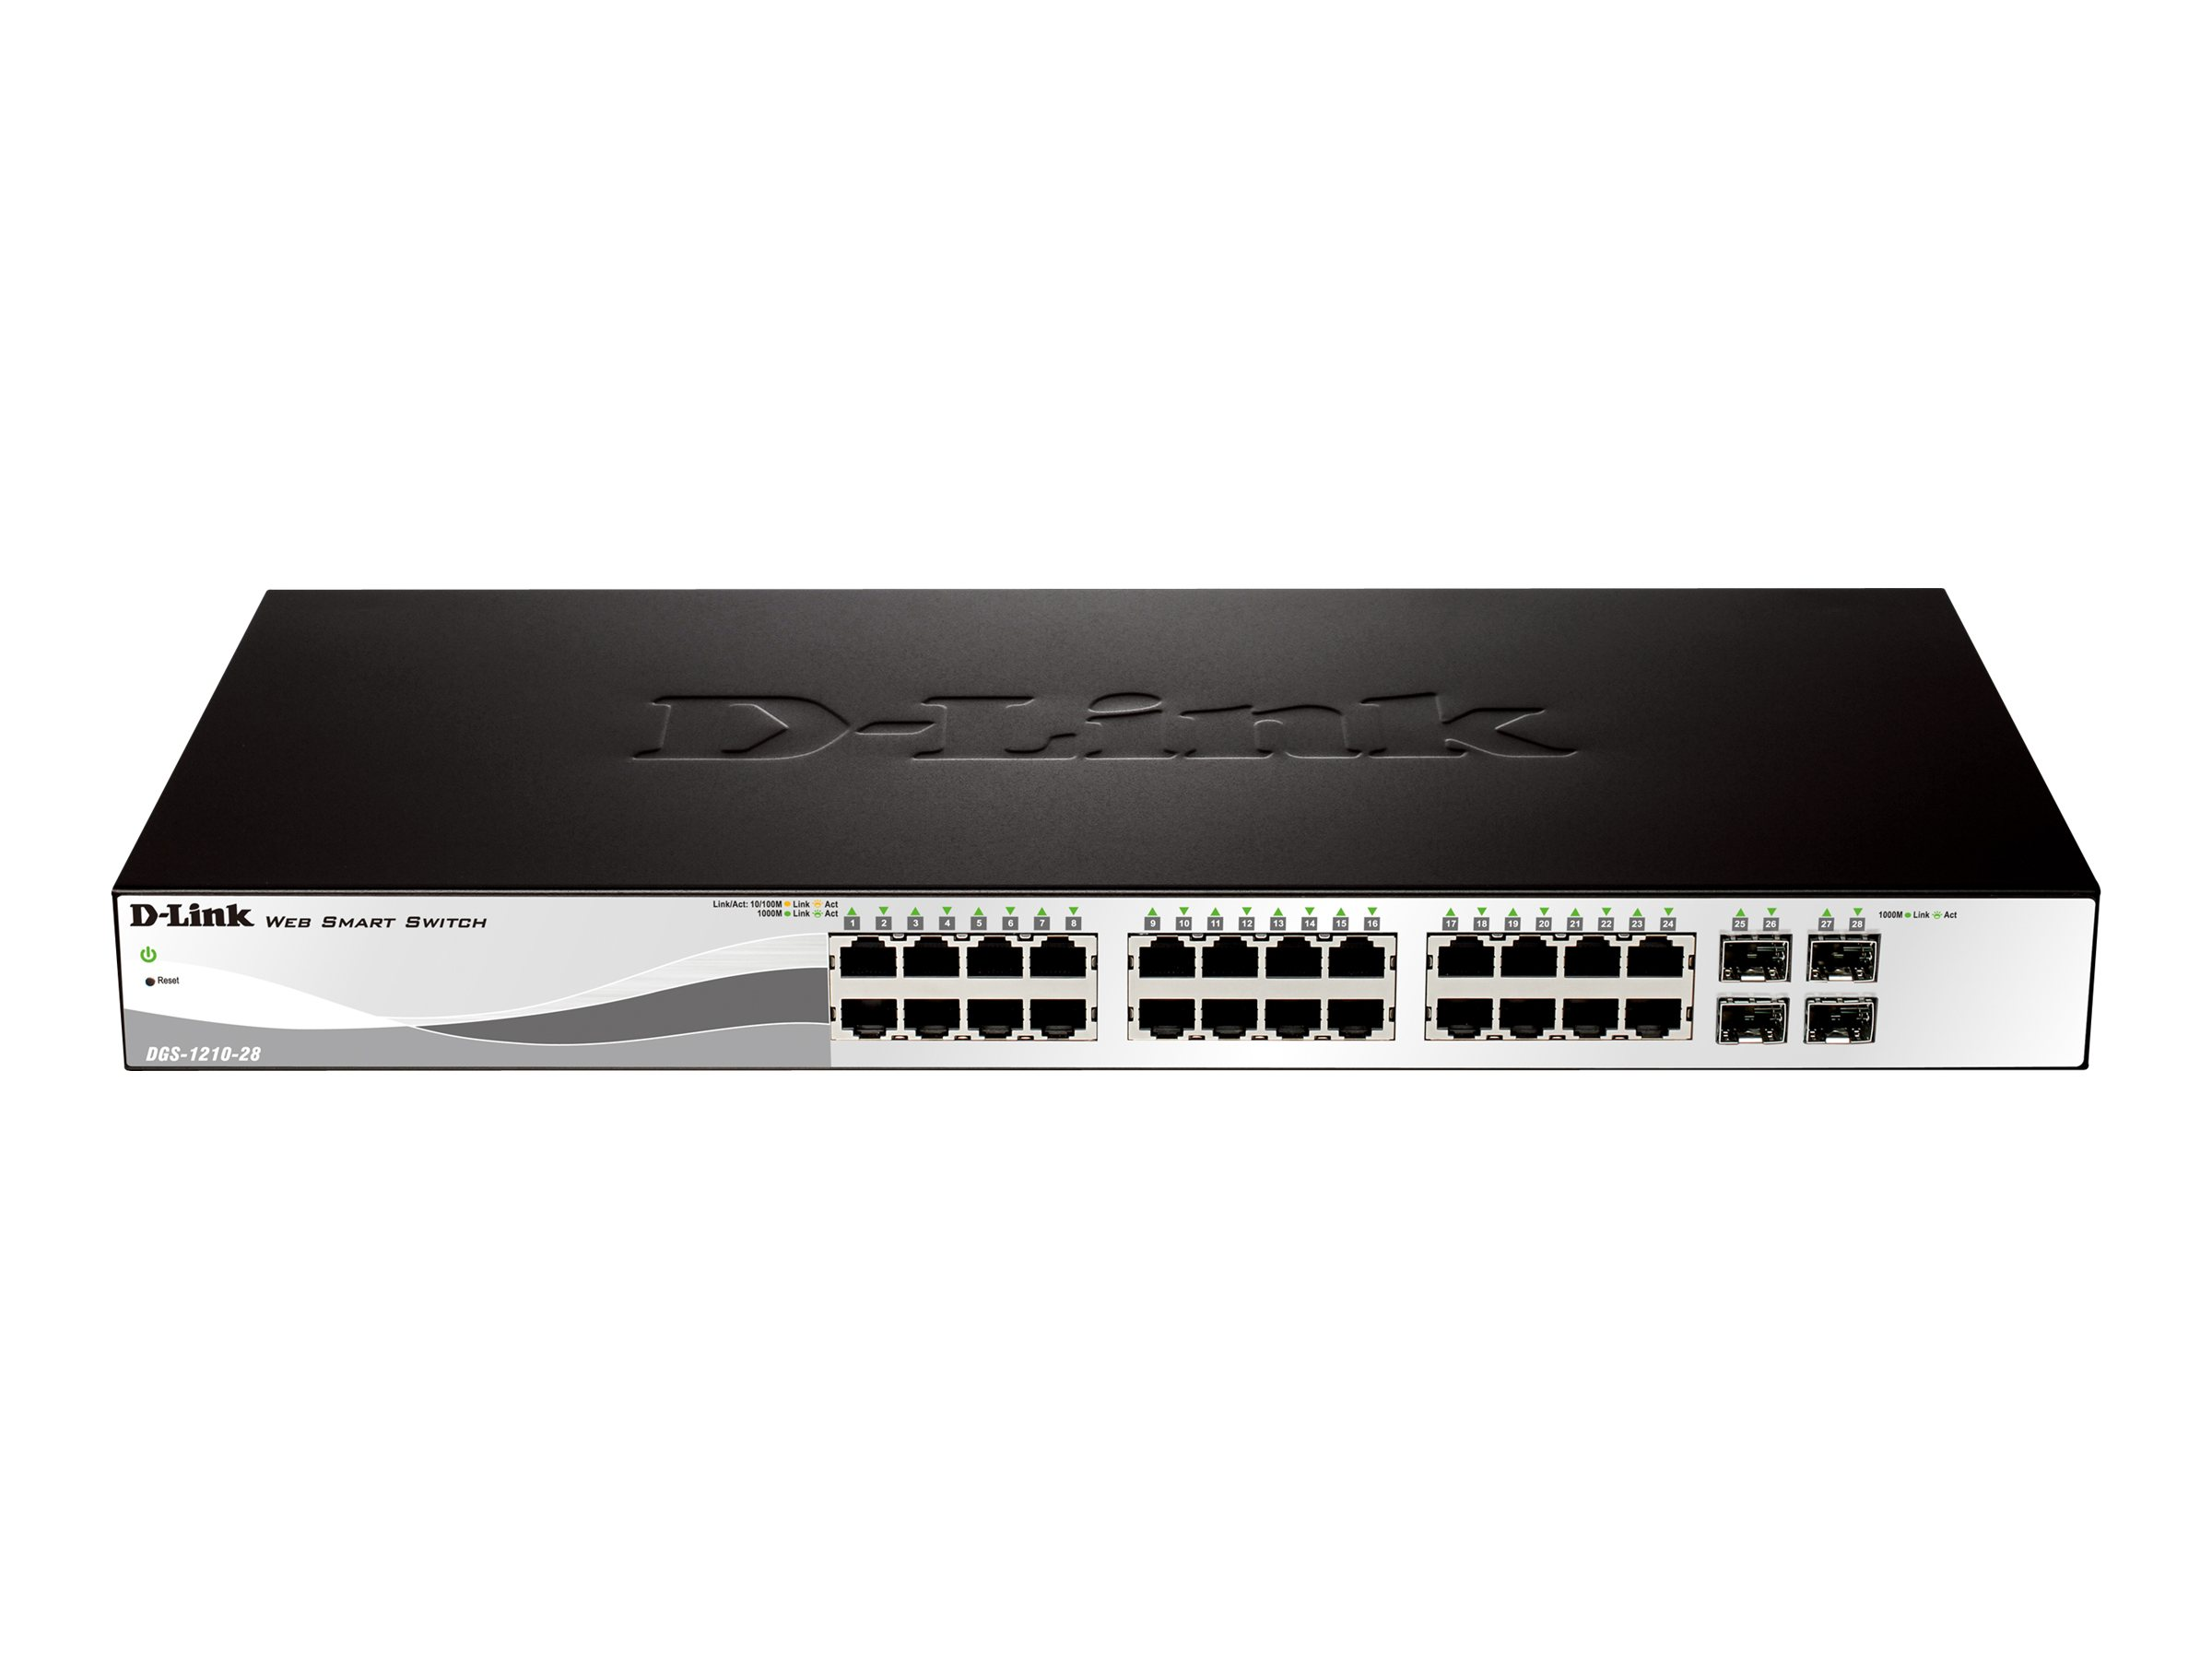 D-Link Web Smart DGS-1210-28 - switch - 24 ports - managed - rack-mountable